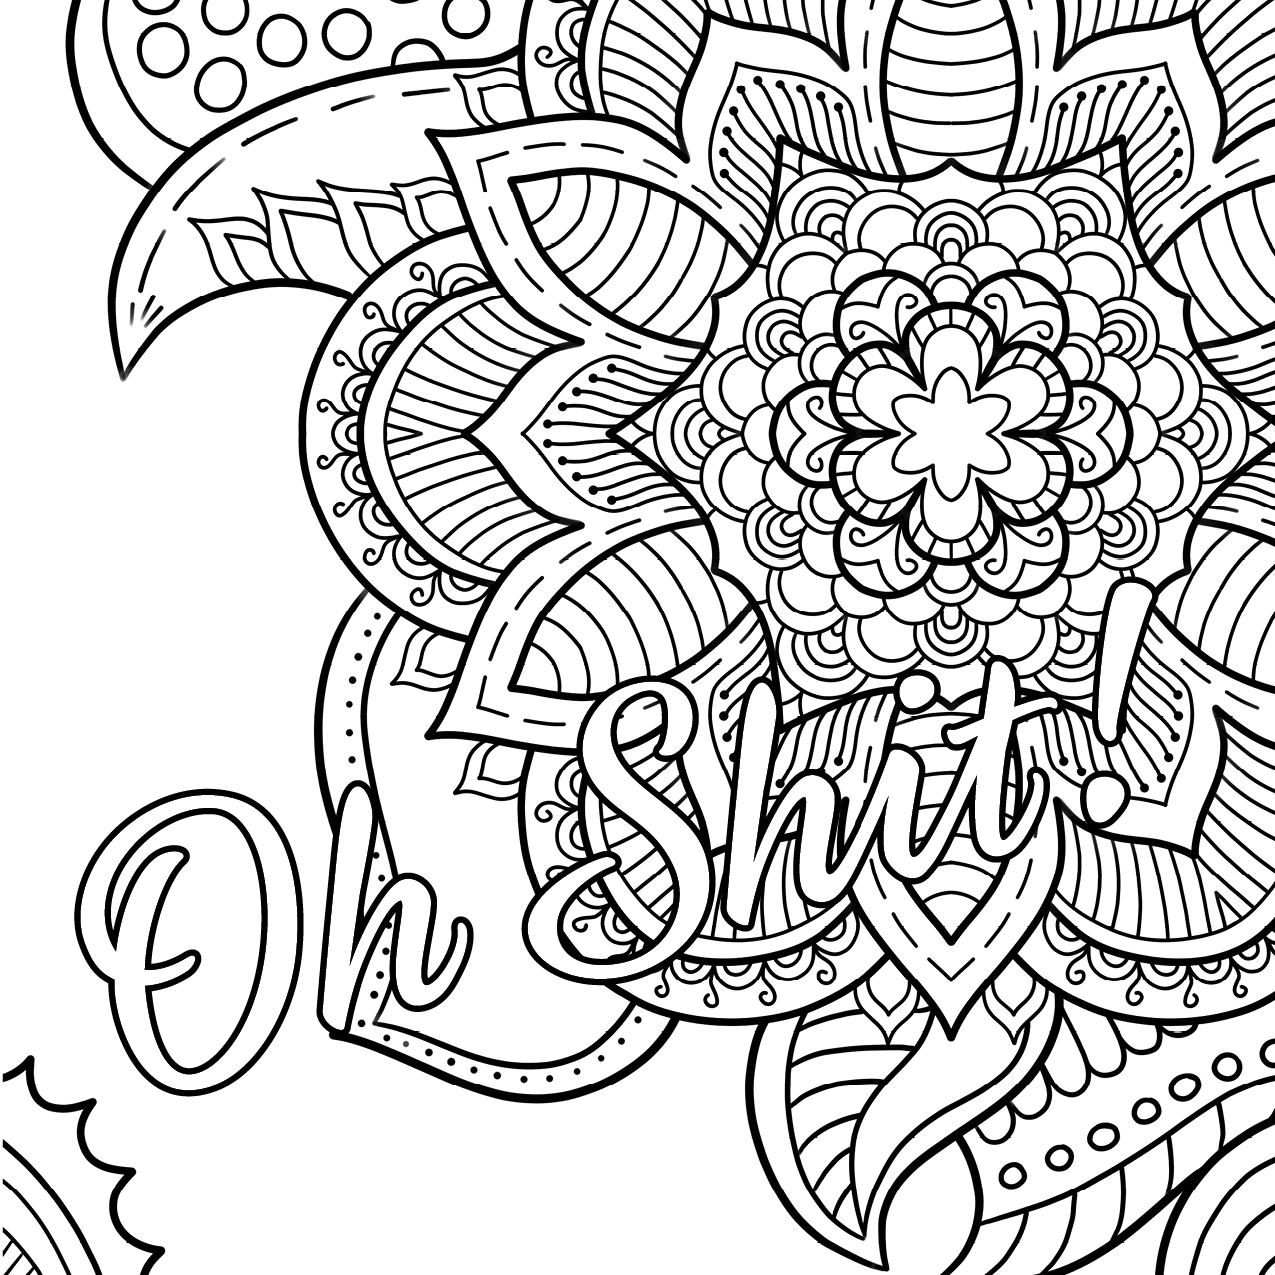 1275x1275 Swear Word Coloring Pages Printable Free Printable Coloring